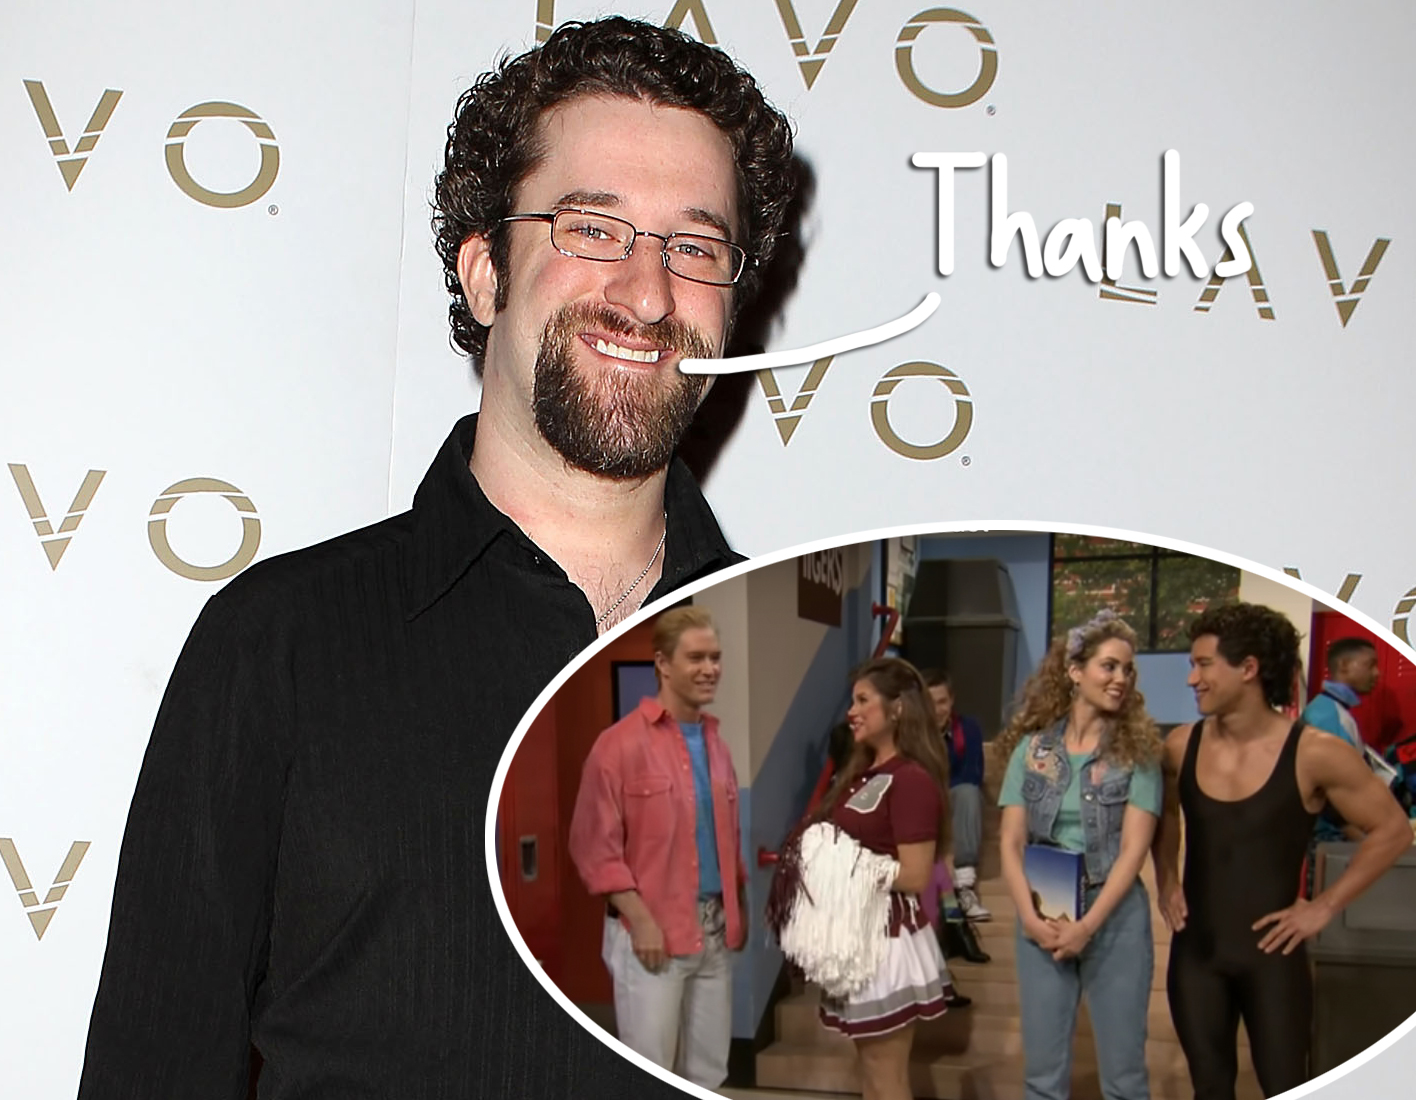 Dustin Diamond Is 'Really Happy' His Saved By The Bell Co-Stars Reached Out Following Cancer Diagnosis